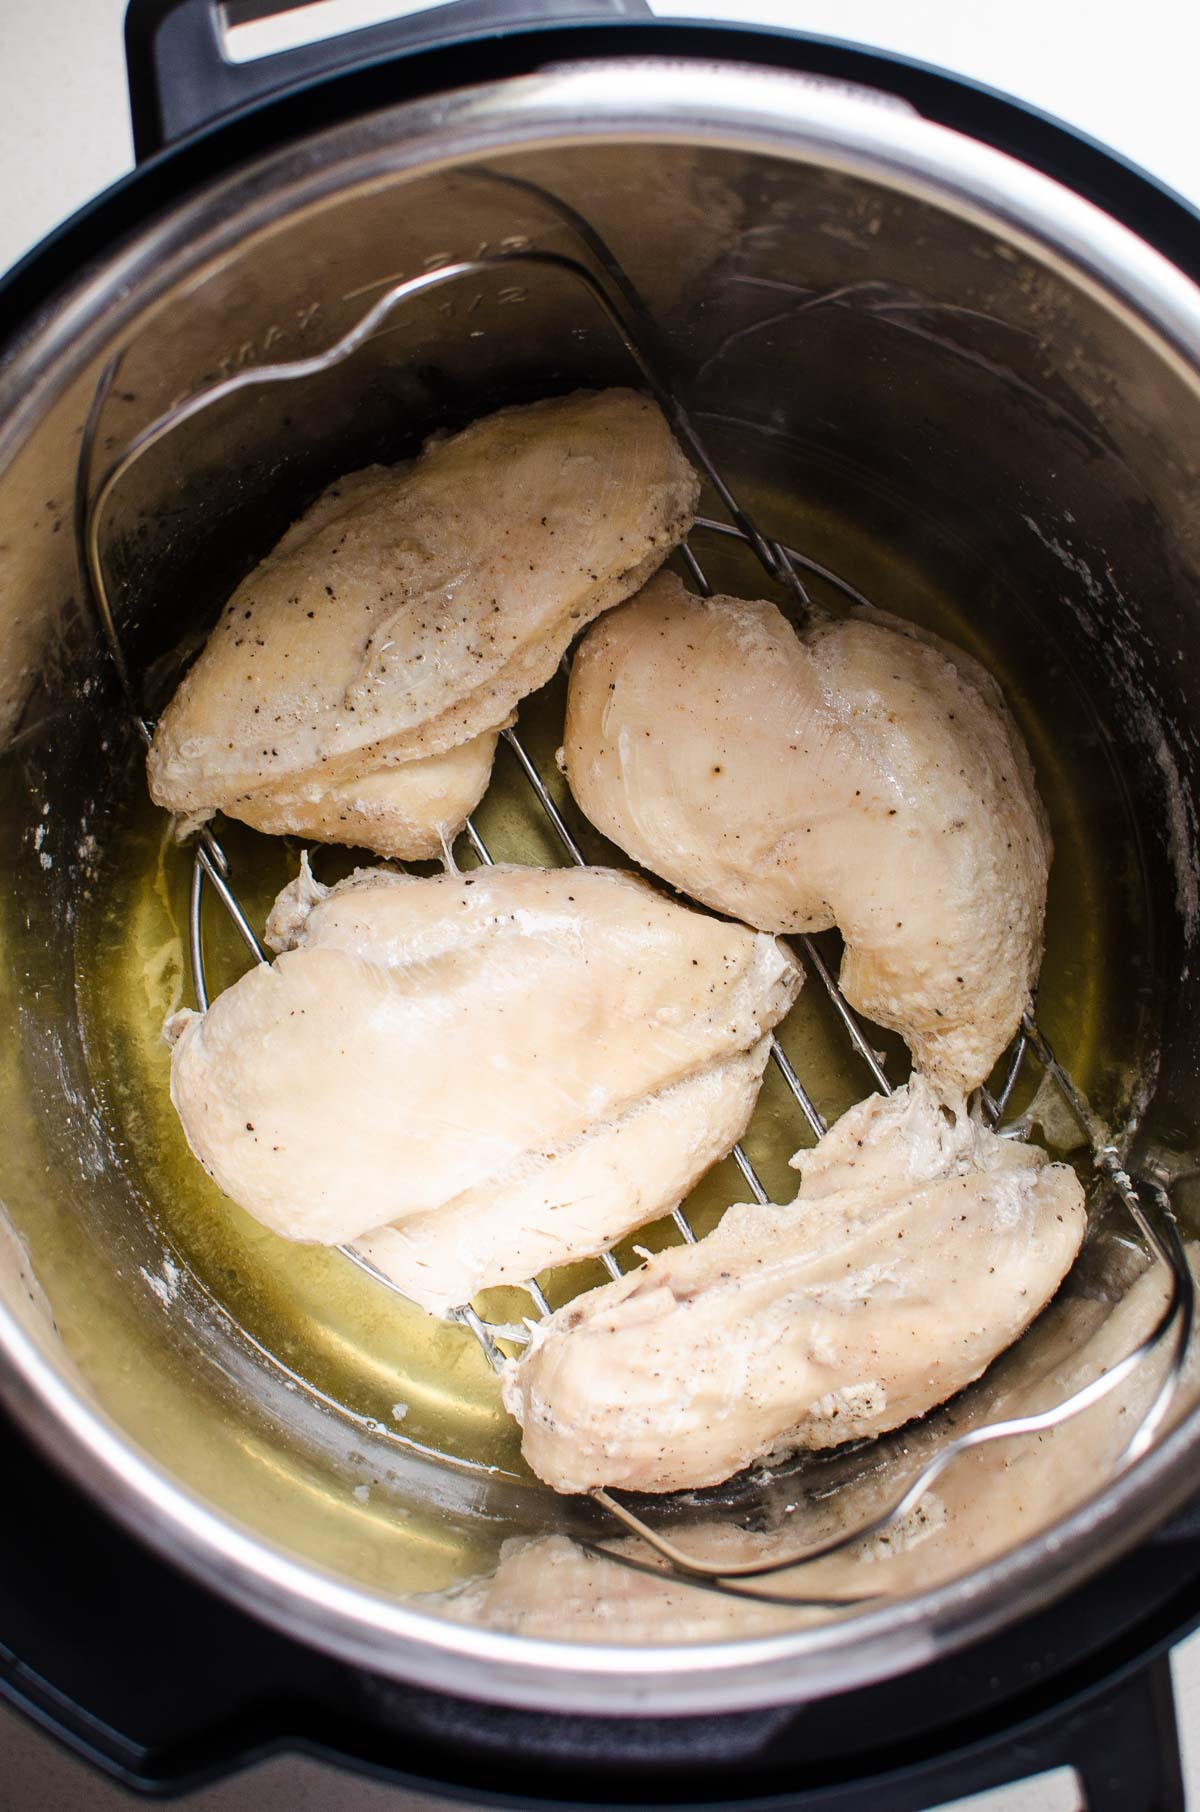 Instant Pot Chicken Breast Fresh Or Frozen Ifoodreal Com Healthy Family Recipes